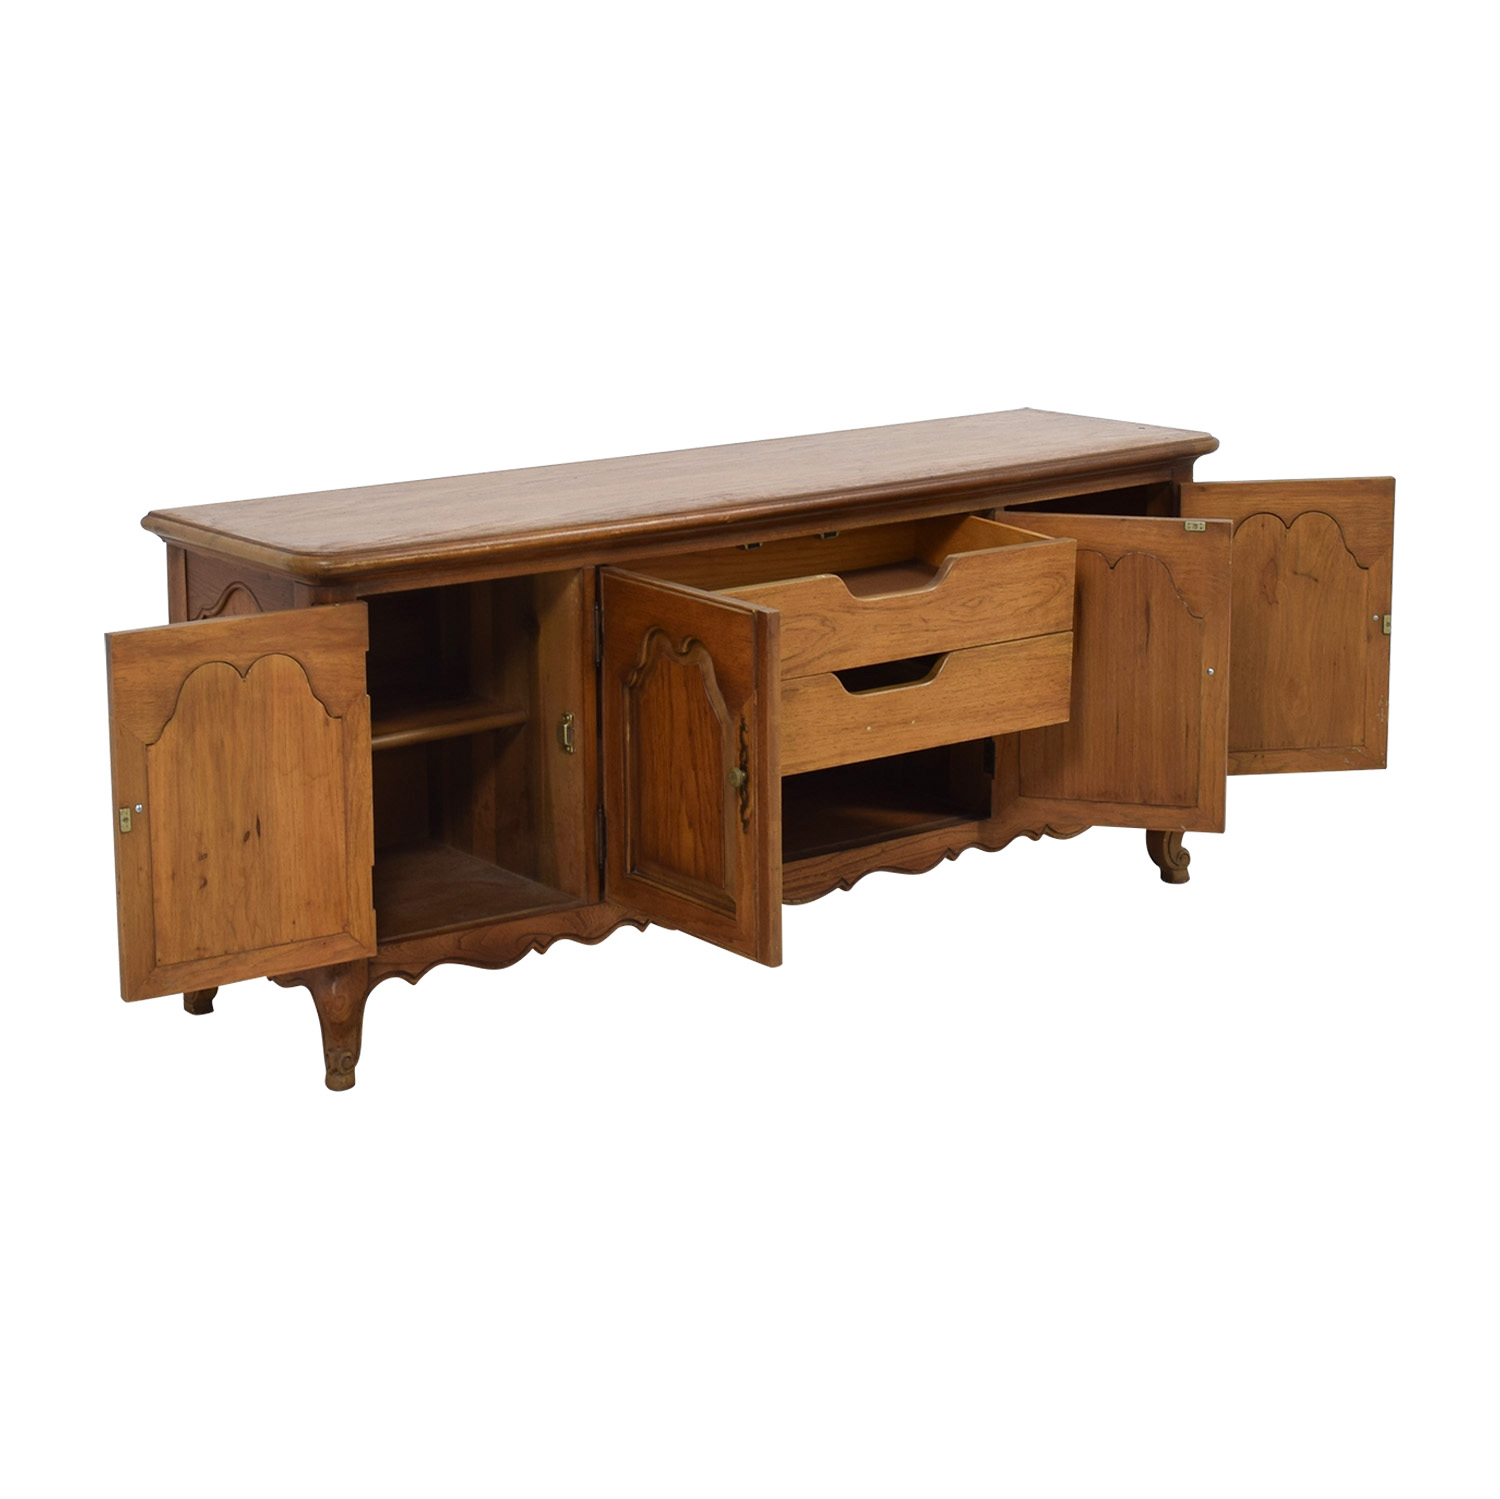 Mount Airy Mount Airy Wooden Credenza on sale